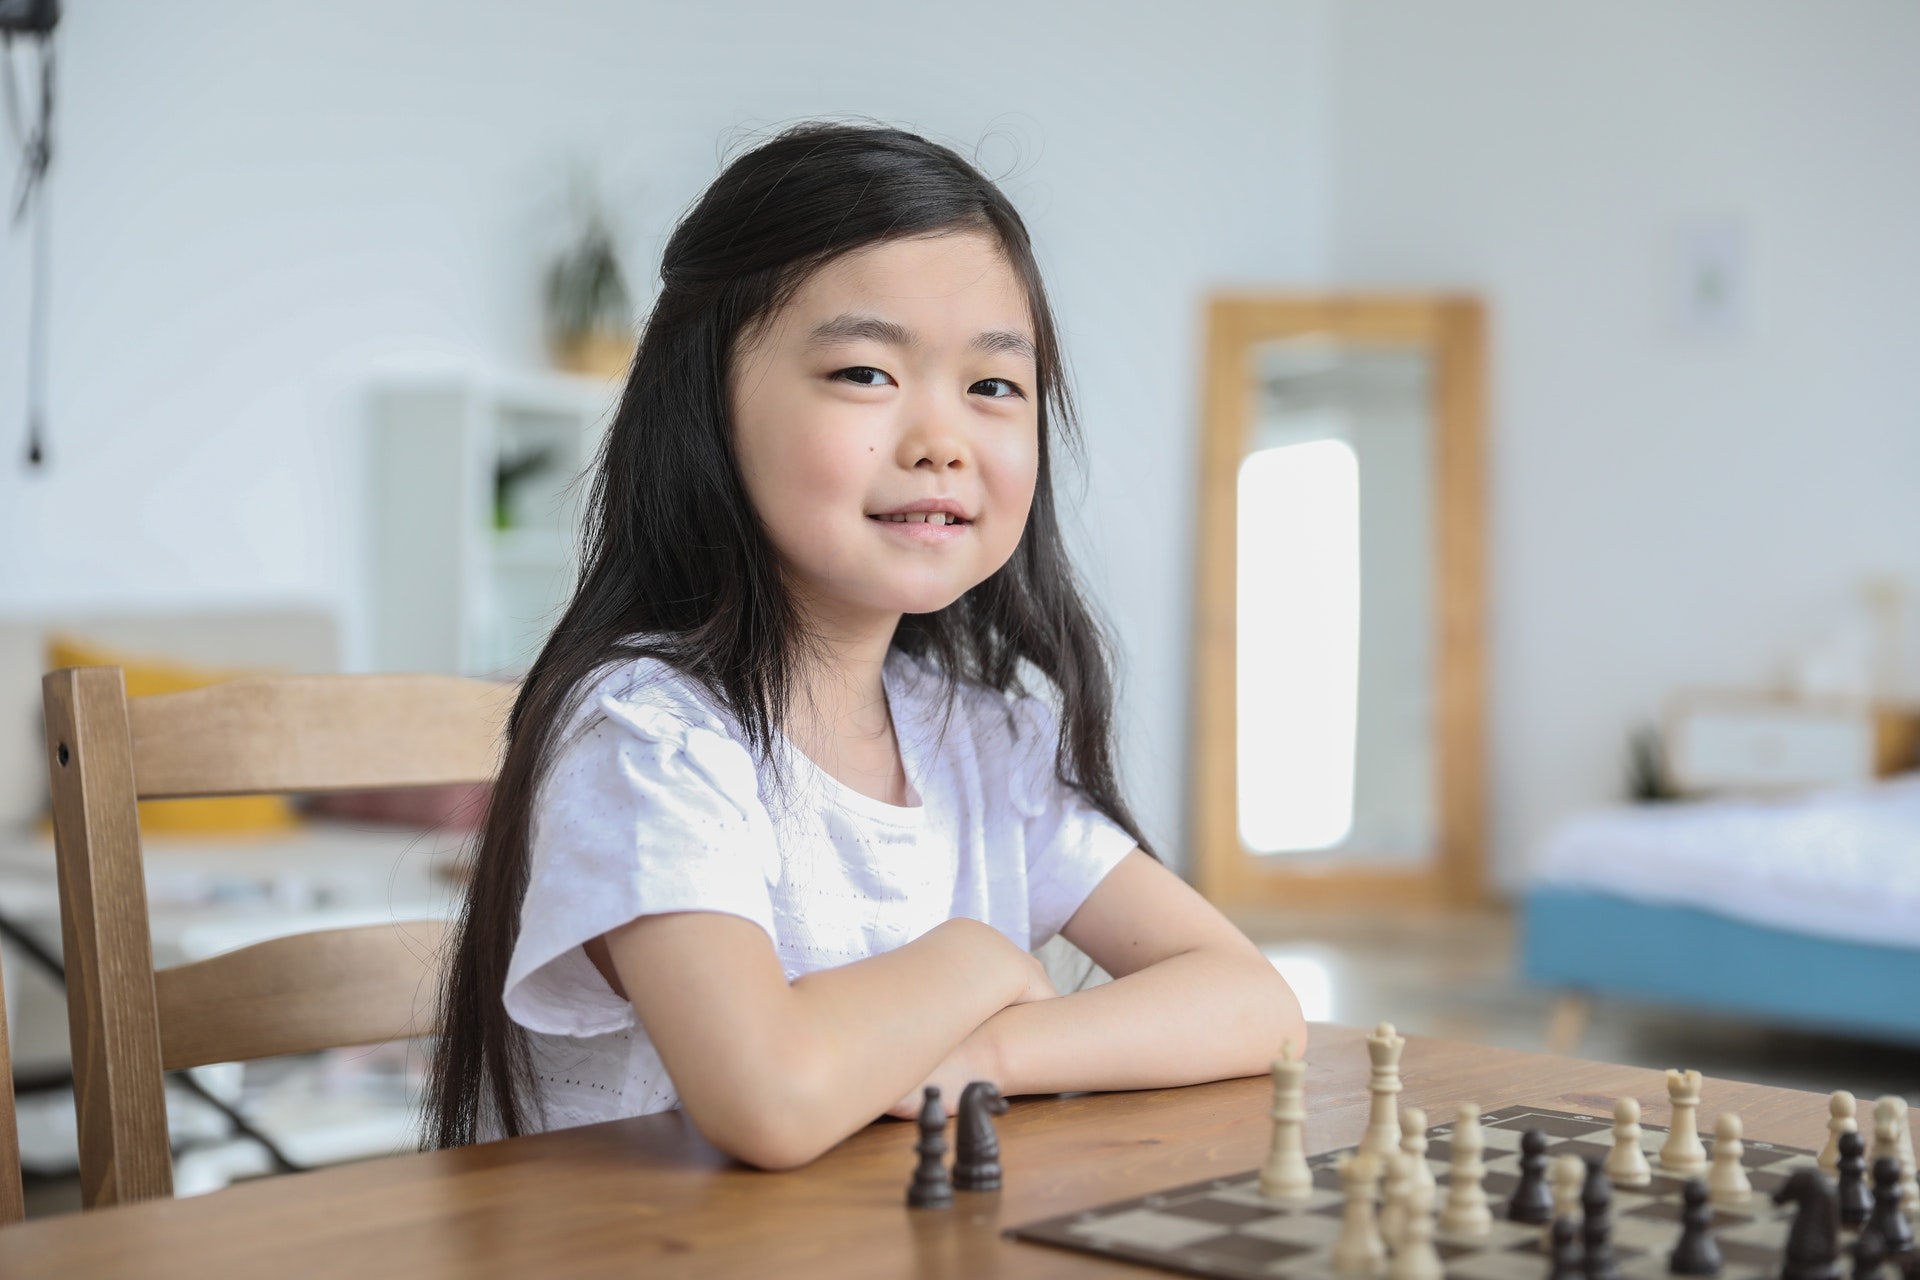 Young_child_memorizing_chess_checkers_techniques_and_tricks.jpg